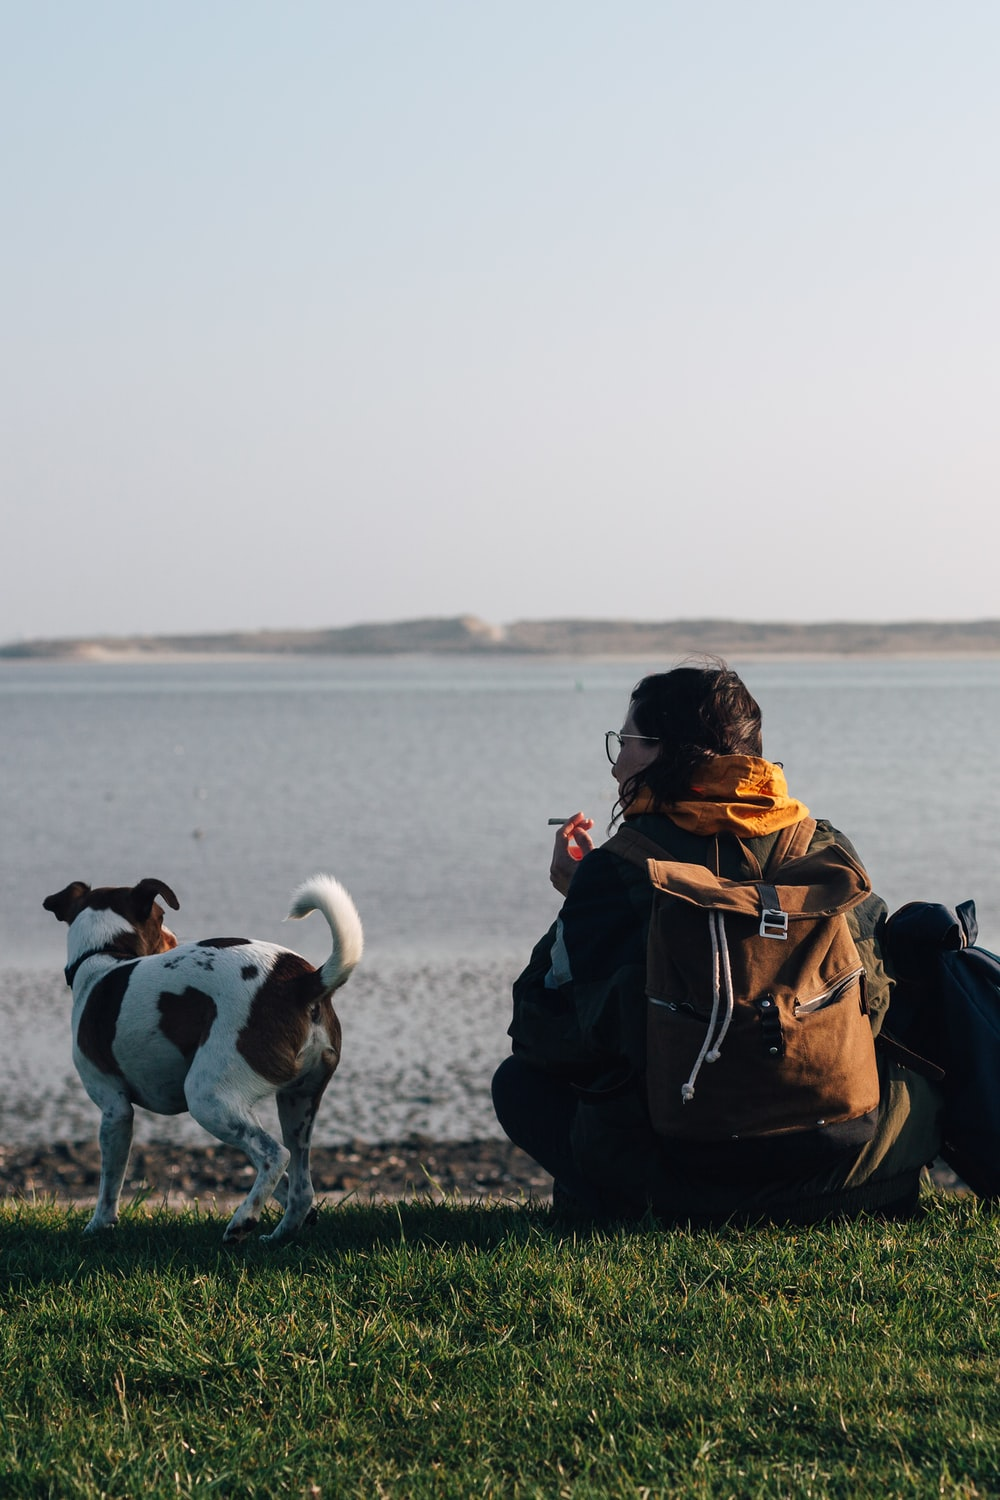 person sitting on grass beside dog near body of water